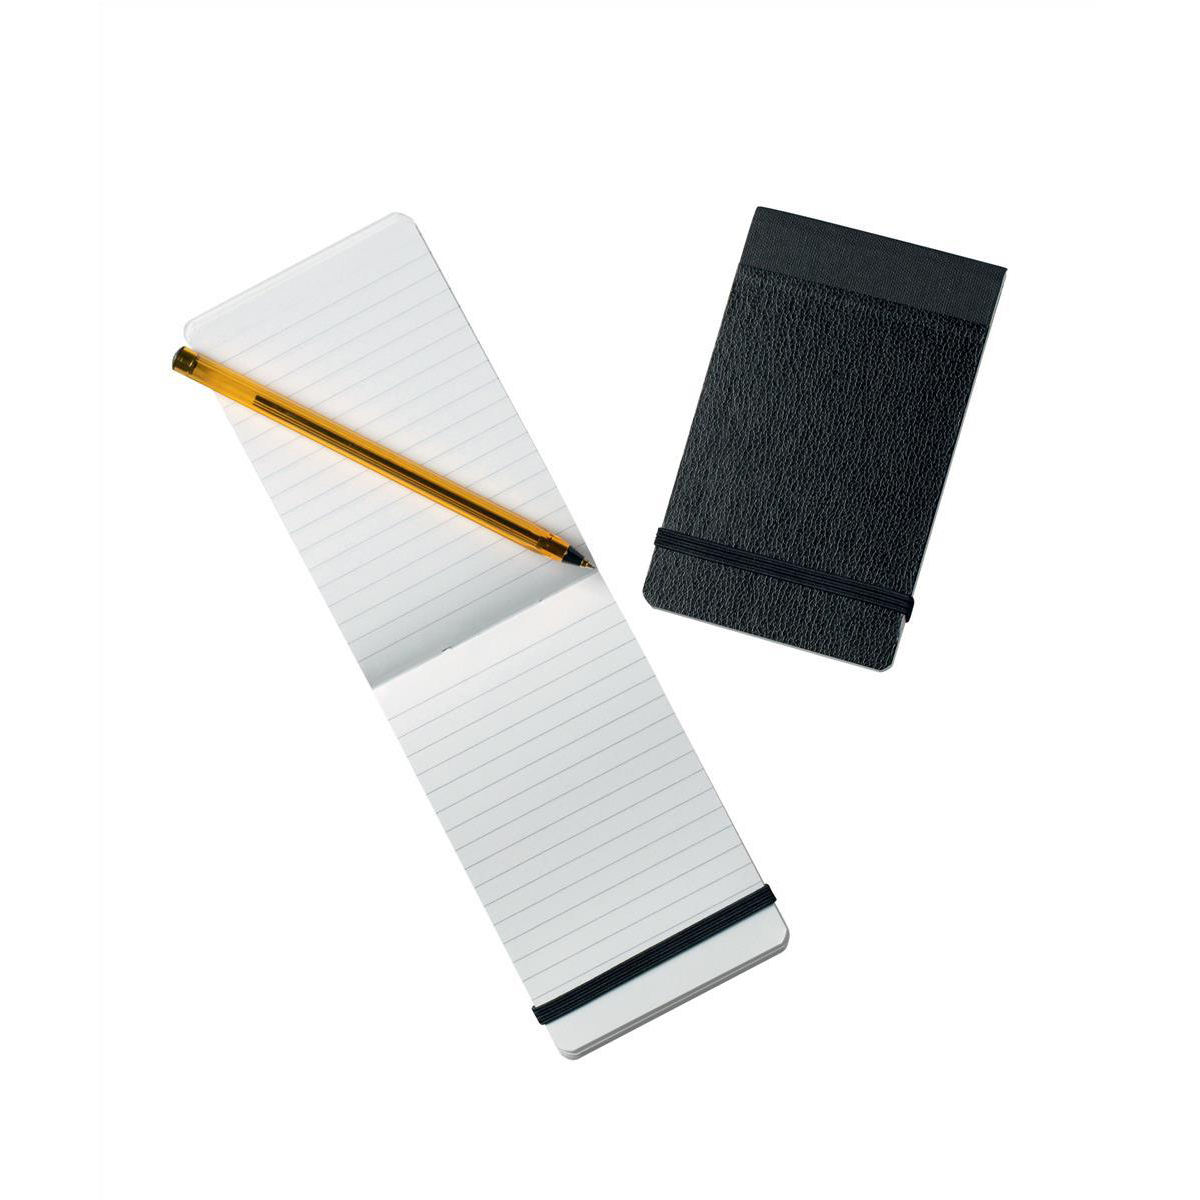 Notebooks Silvine Elasticated Pocket Notebook 75gsm Ruled 160pp 78x127mm Black Ref 190 Pack 12